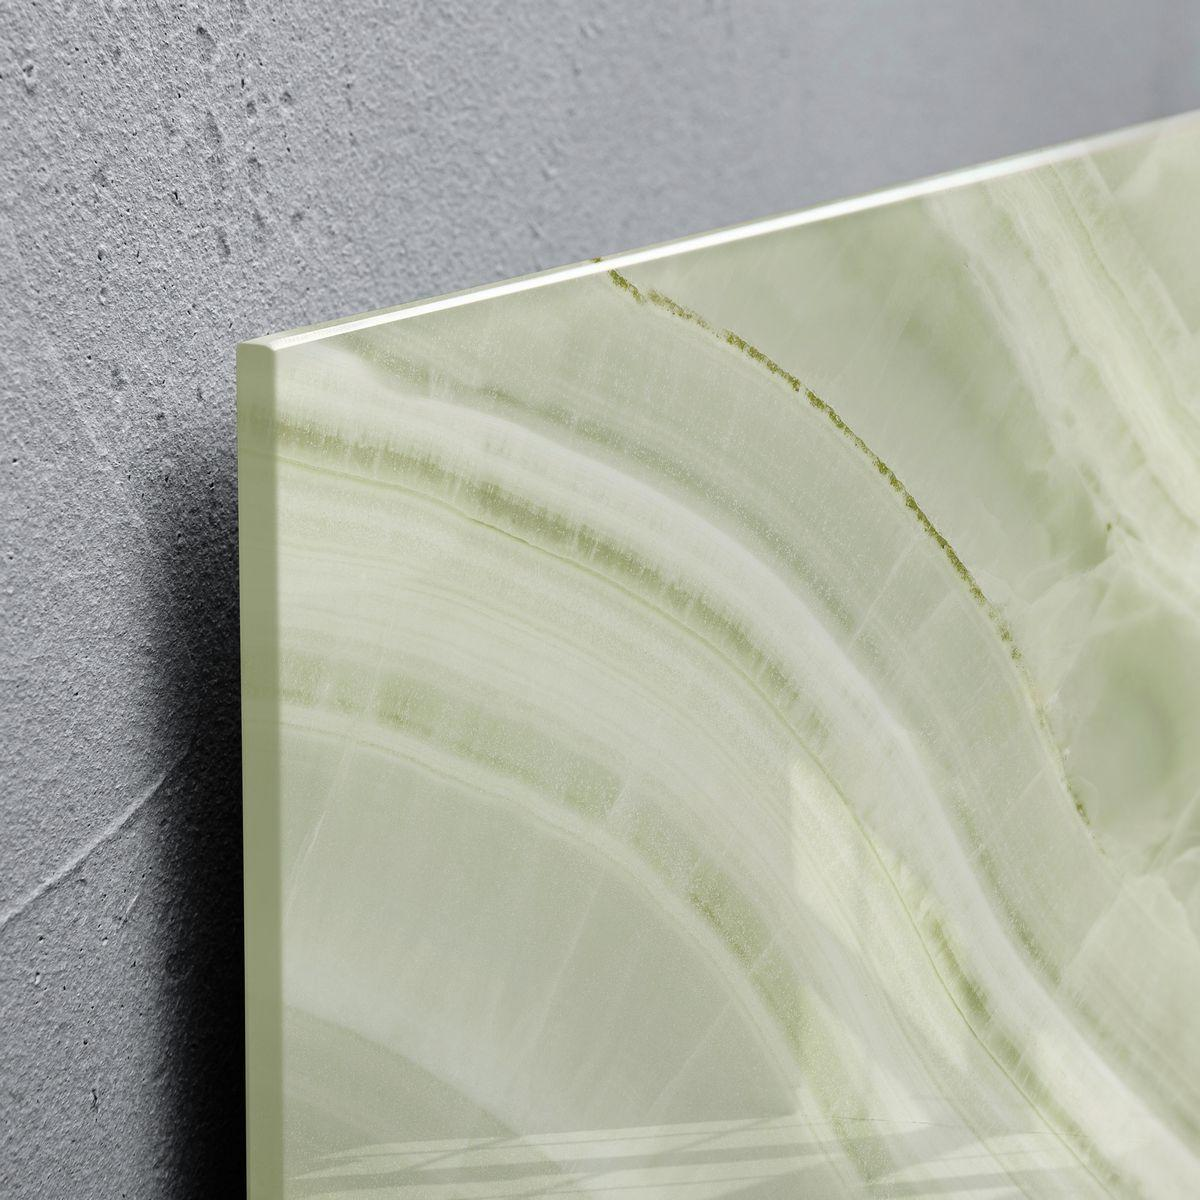 Glasmagnetboard-artverum-Detail-01-Green-Mineral